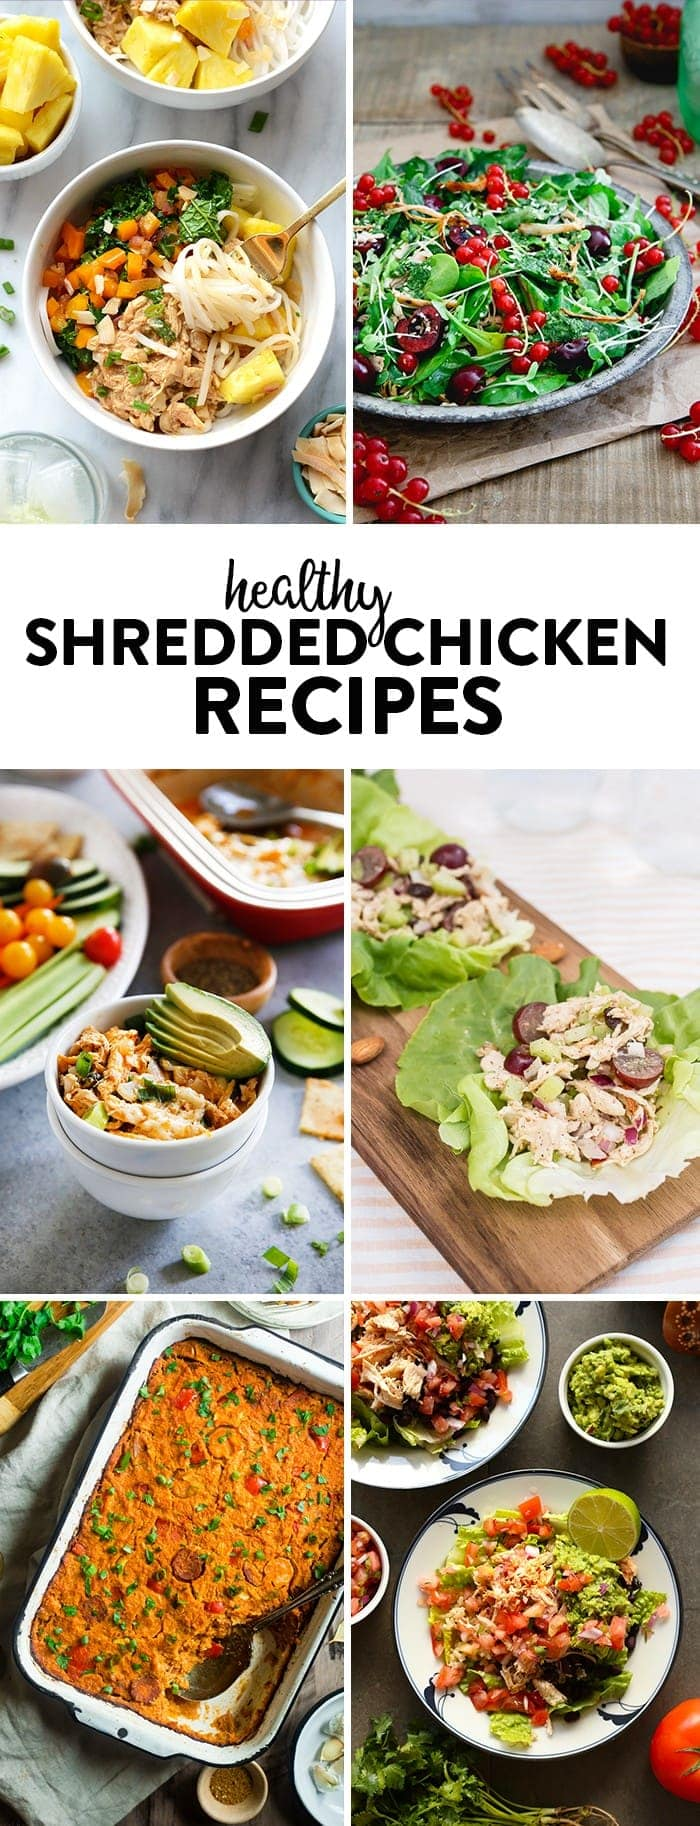 Looking for your next healthy dinner recipe featuring shredded chicken? Add one of these to your menu for the week!